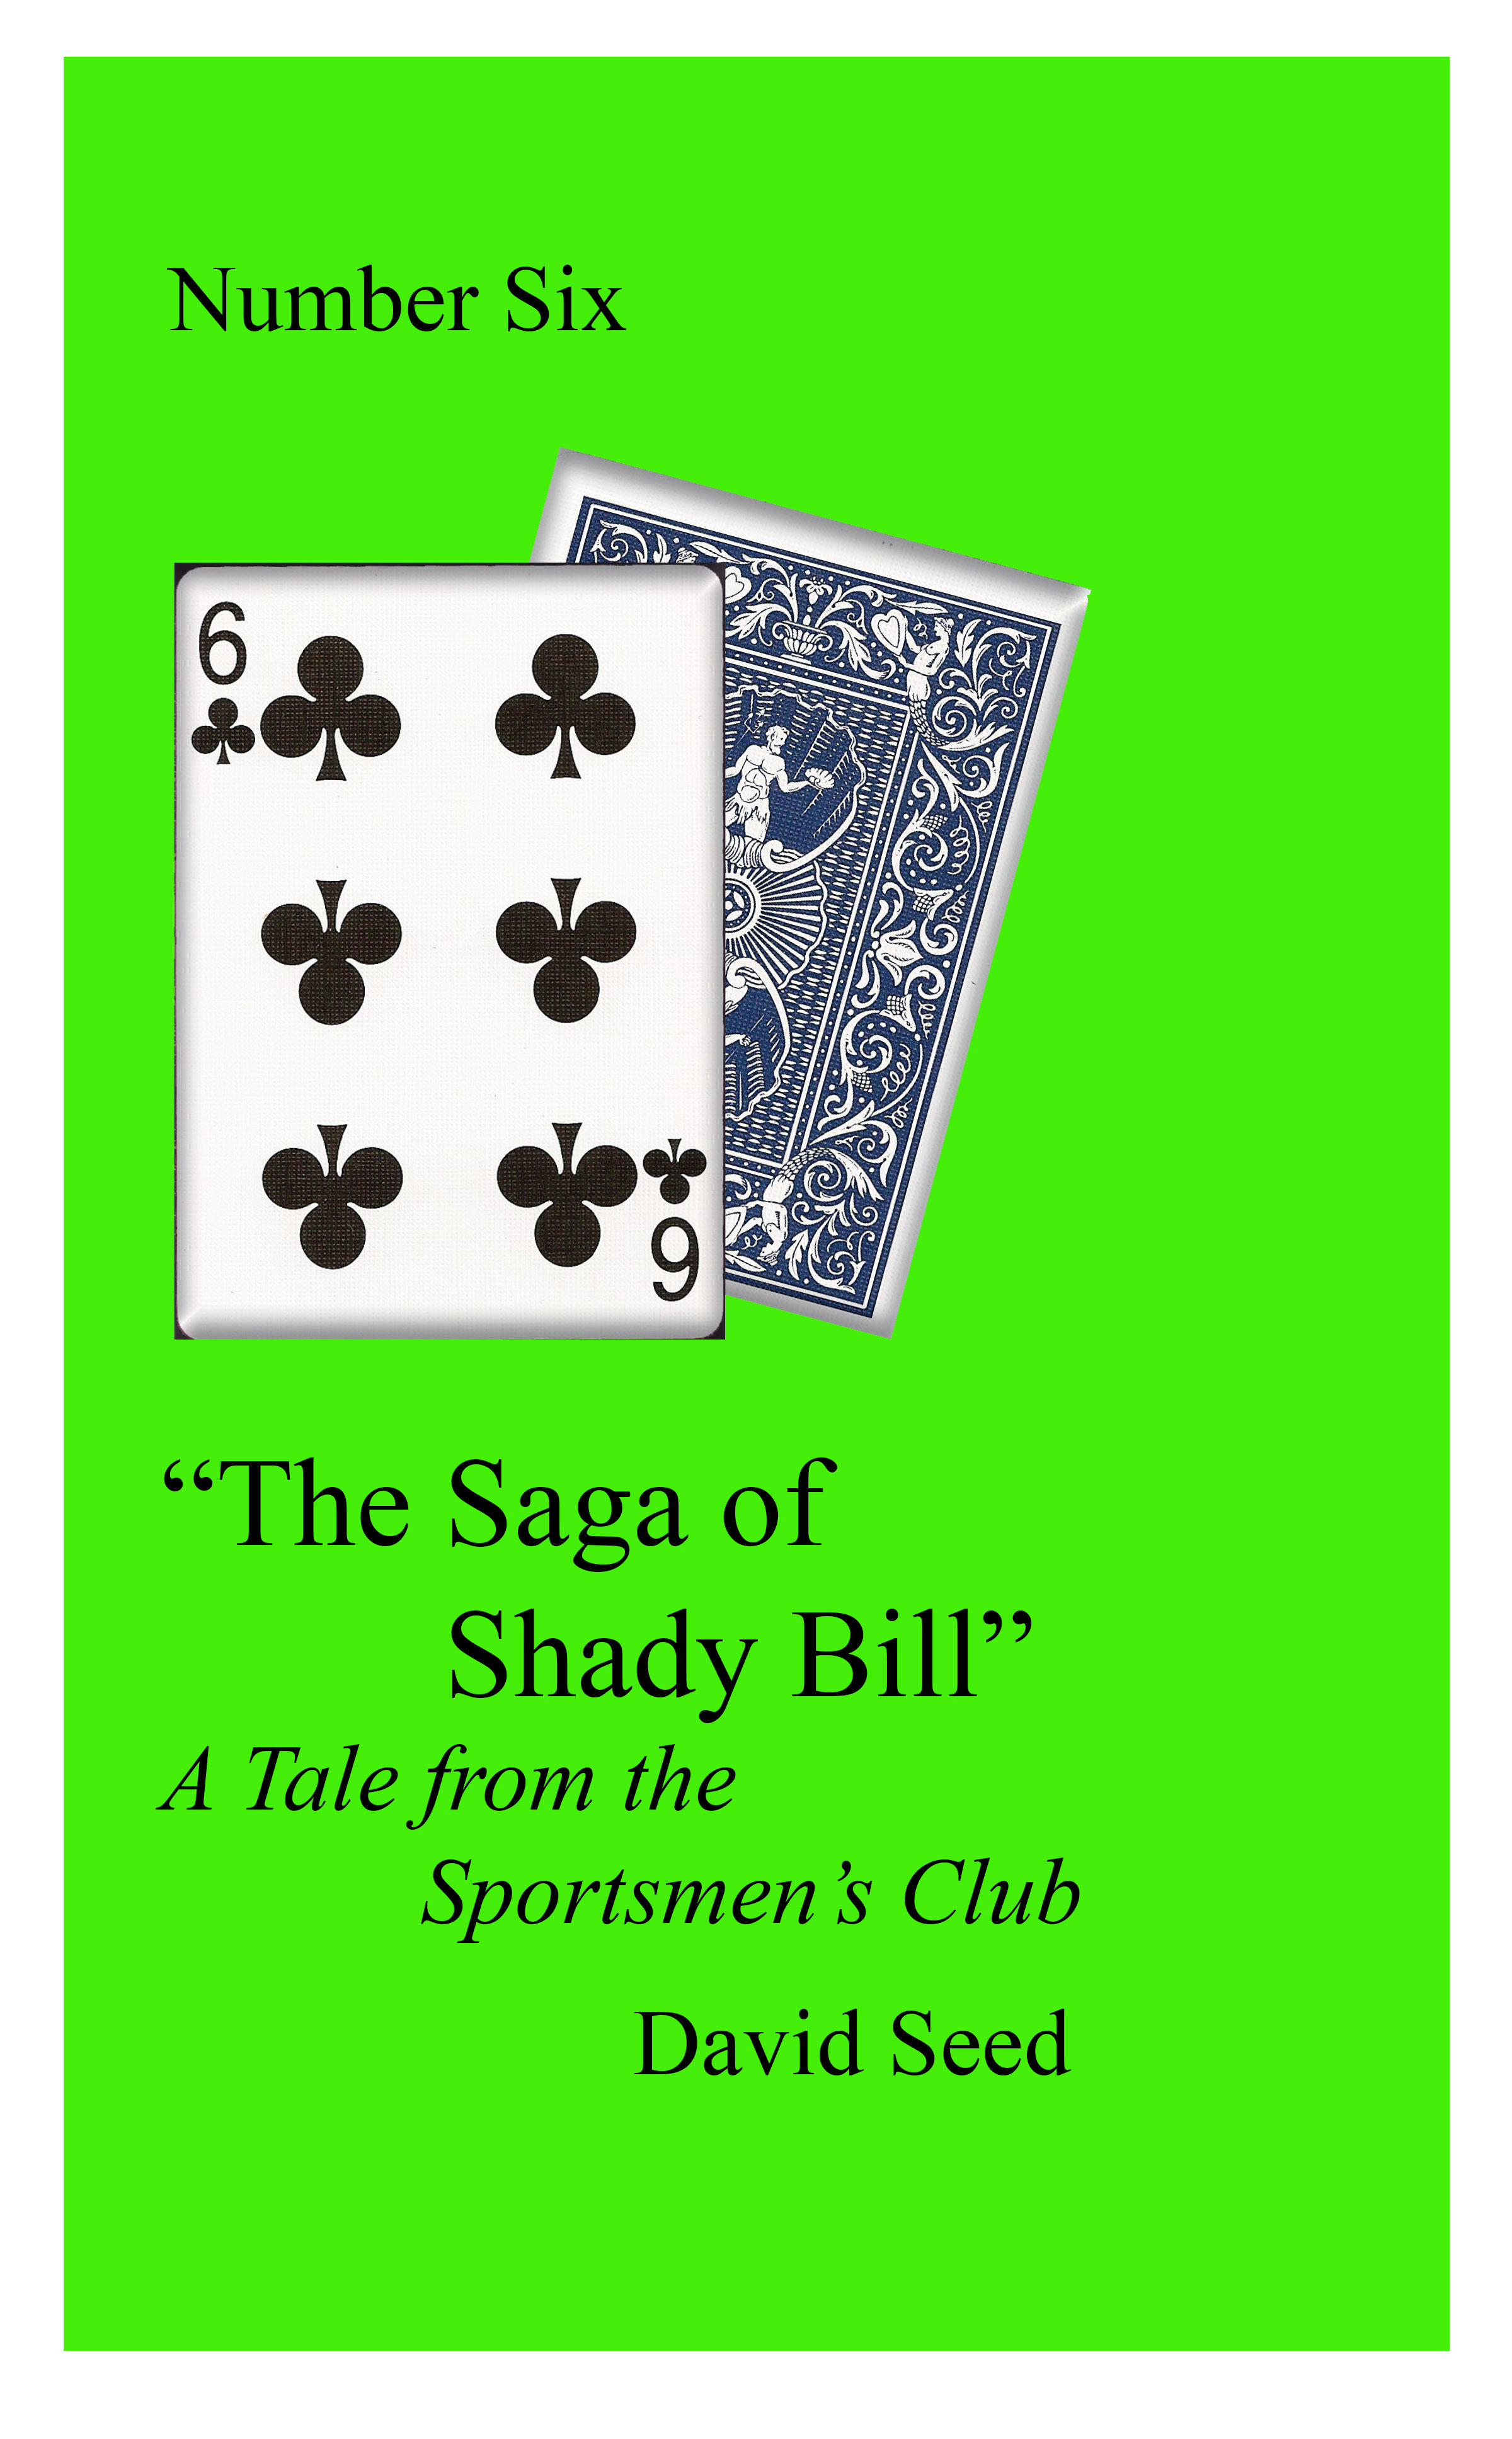 The Saga of Shady Bill: A Tale of the Sportsmen's Club